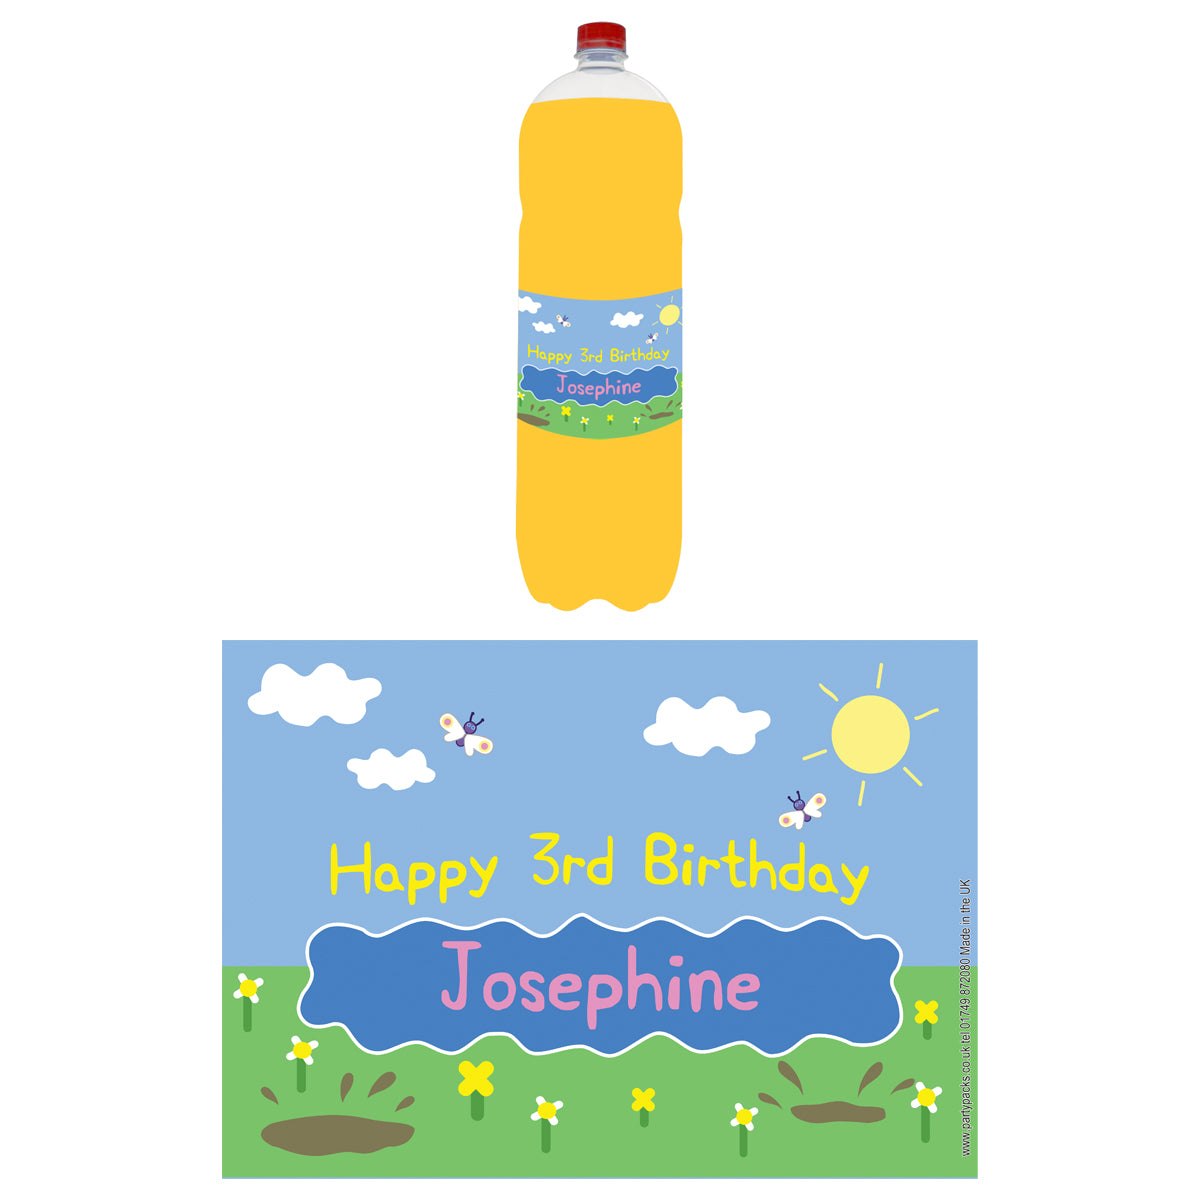 Personalised Bottle Labels - Muddy Pig - Pack of 4